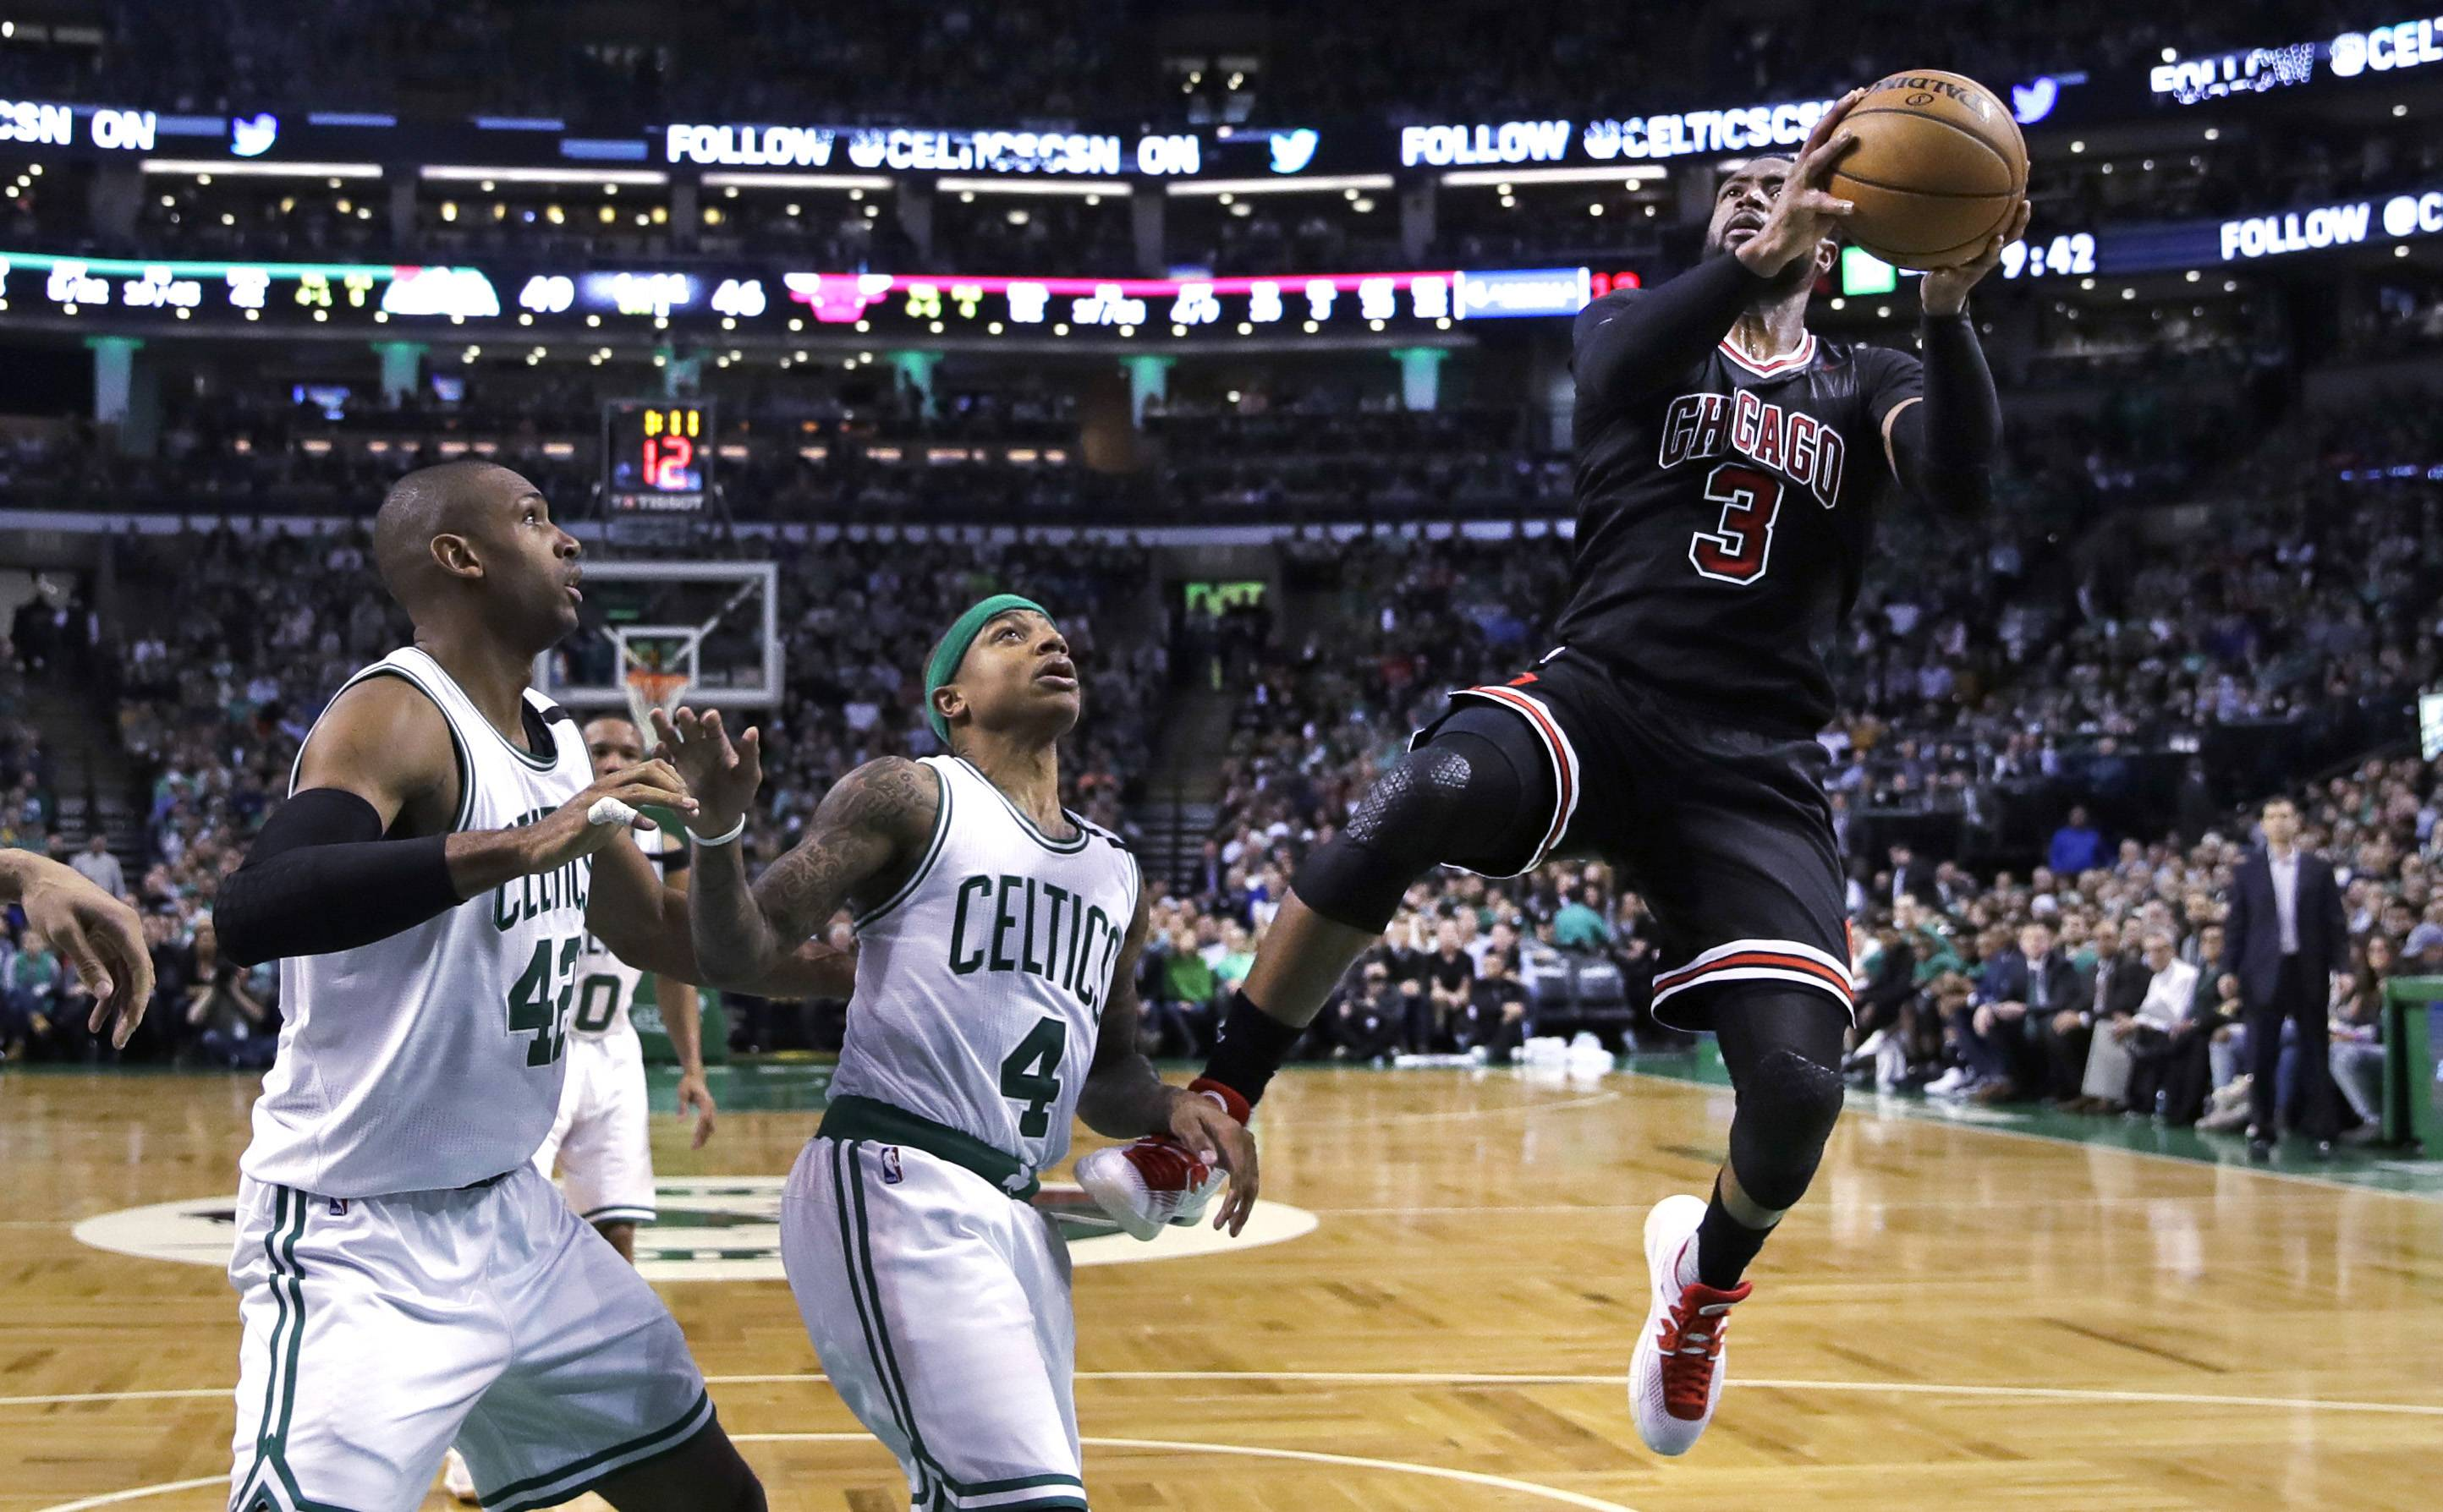 Bulls' guard Dwyane Wade shoots over Boston Celtics guard Isaiah Thomas (4) and center Al Horford (42) on a drive to the basket in the second quarter in Boston on Wednesday. Though Game 5 was competitive, this Bulls-Celtics series sure hasn't had much buzz.